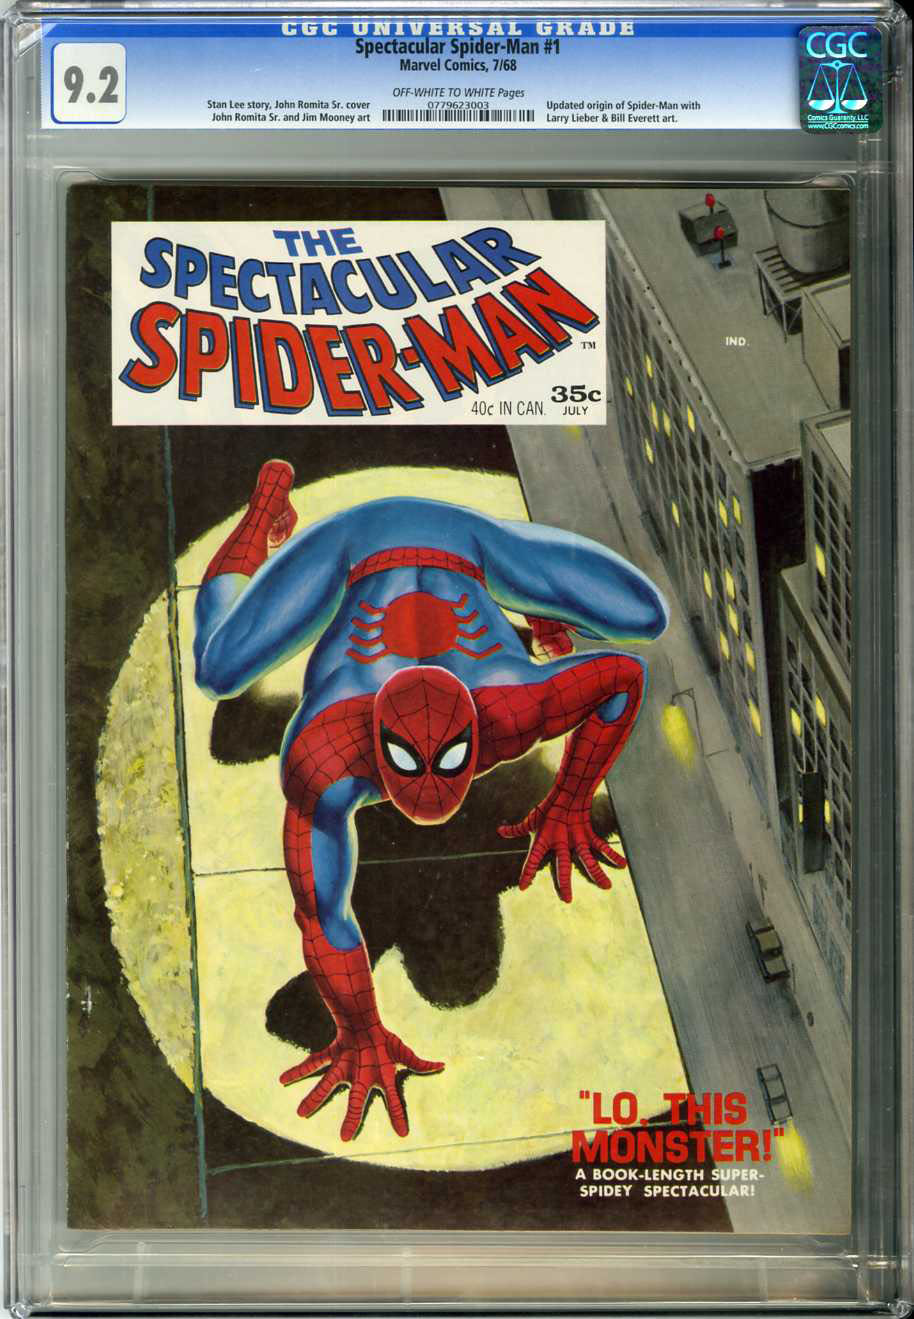 SPECTACULAR SPIDER-MAN #1 (1968) CGC NM- 9.2 OWW Pages / JOHN ROMITA COVER